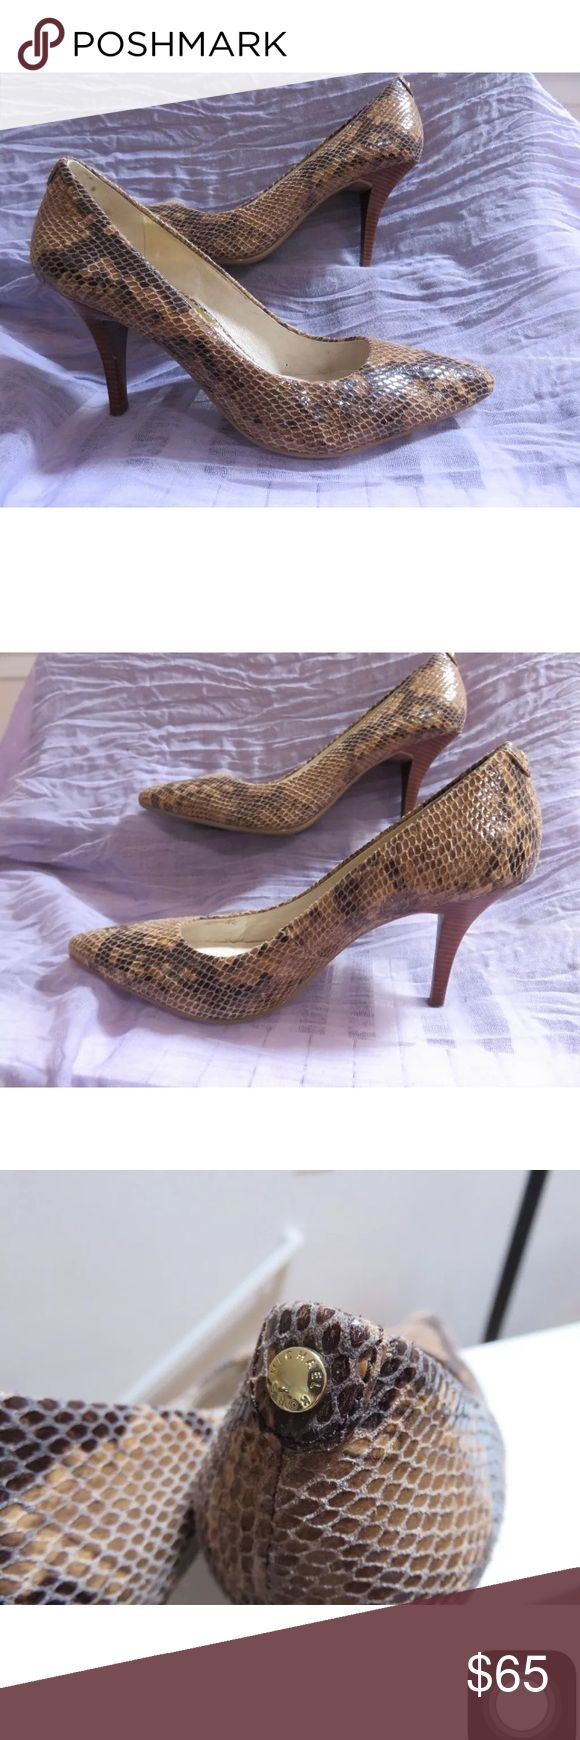 Michael Kors 8.5 Flex Heels Brown Python Snake Great condition with minimal signs of wear. Heels are a bit sticky inside because I removed the pad for heel grip KORS Michael Kors Shoes Heels